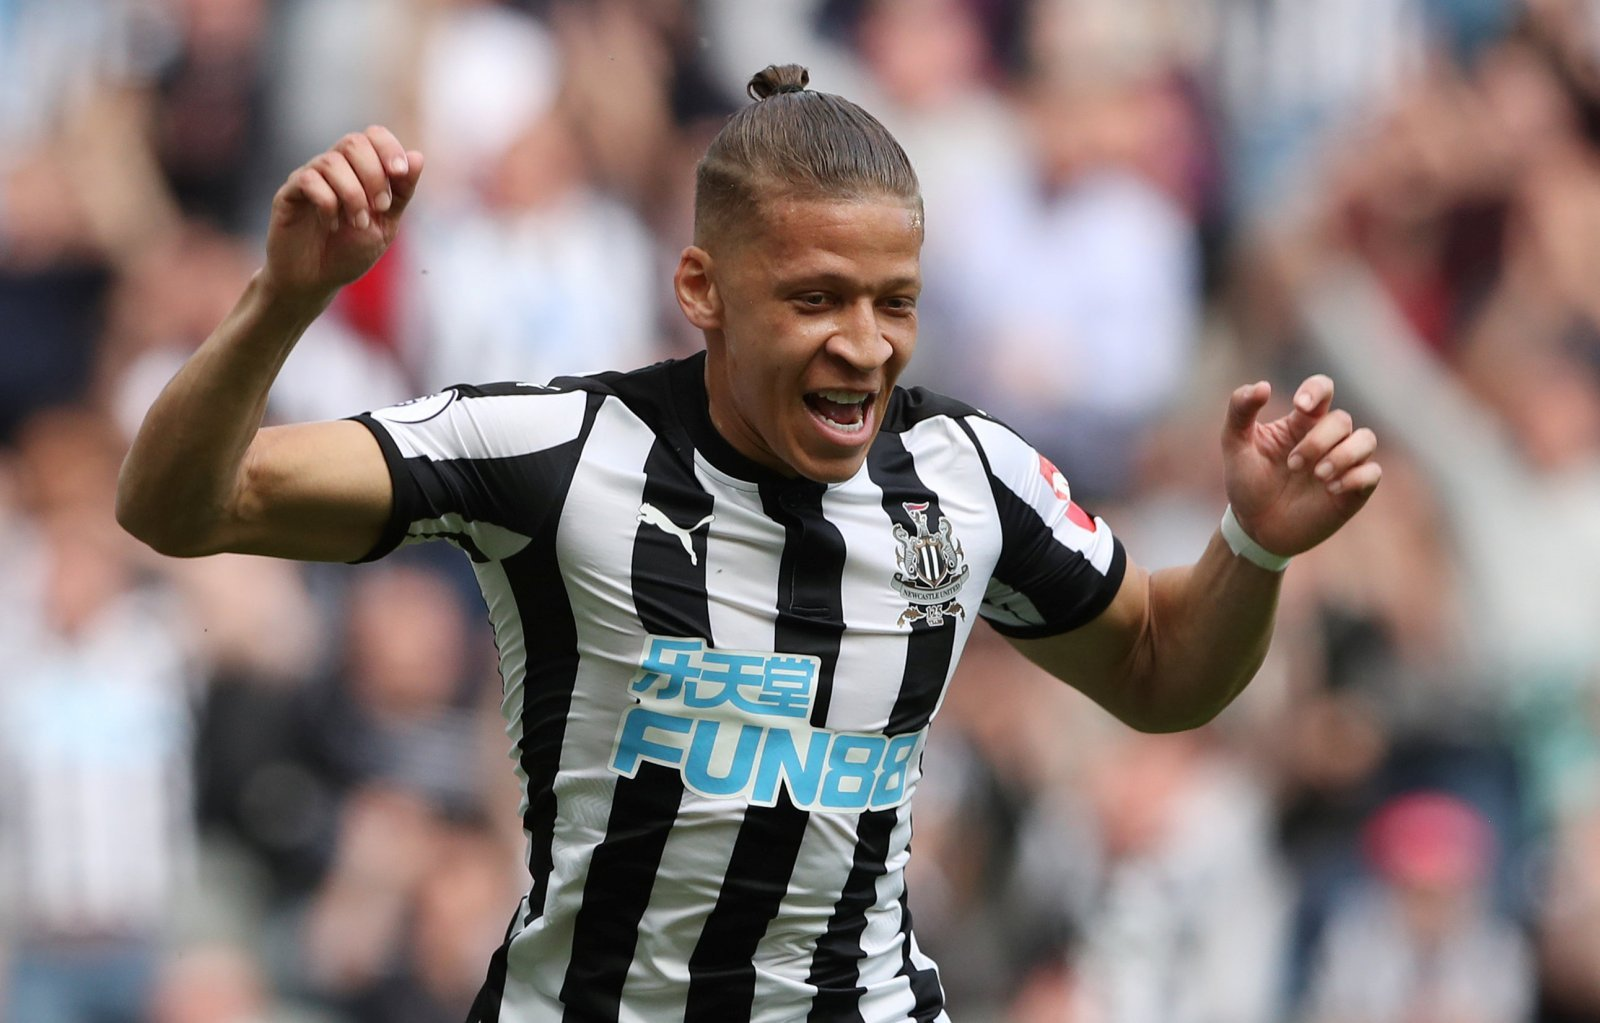 Leeds United: Dwight Gayle being targeted for loan move